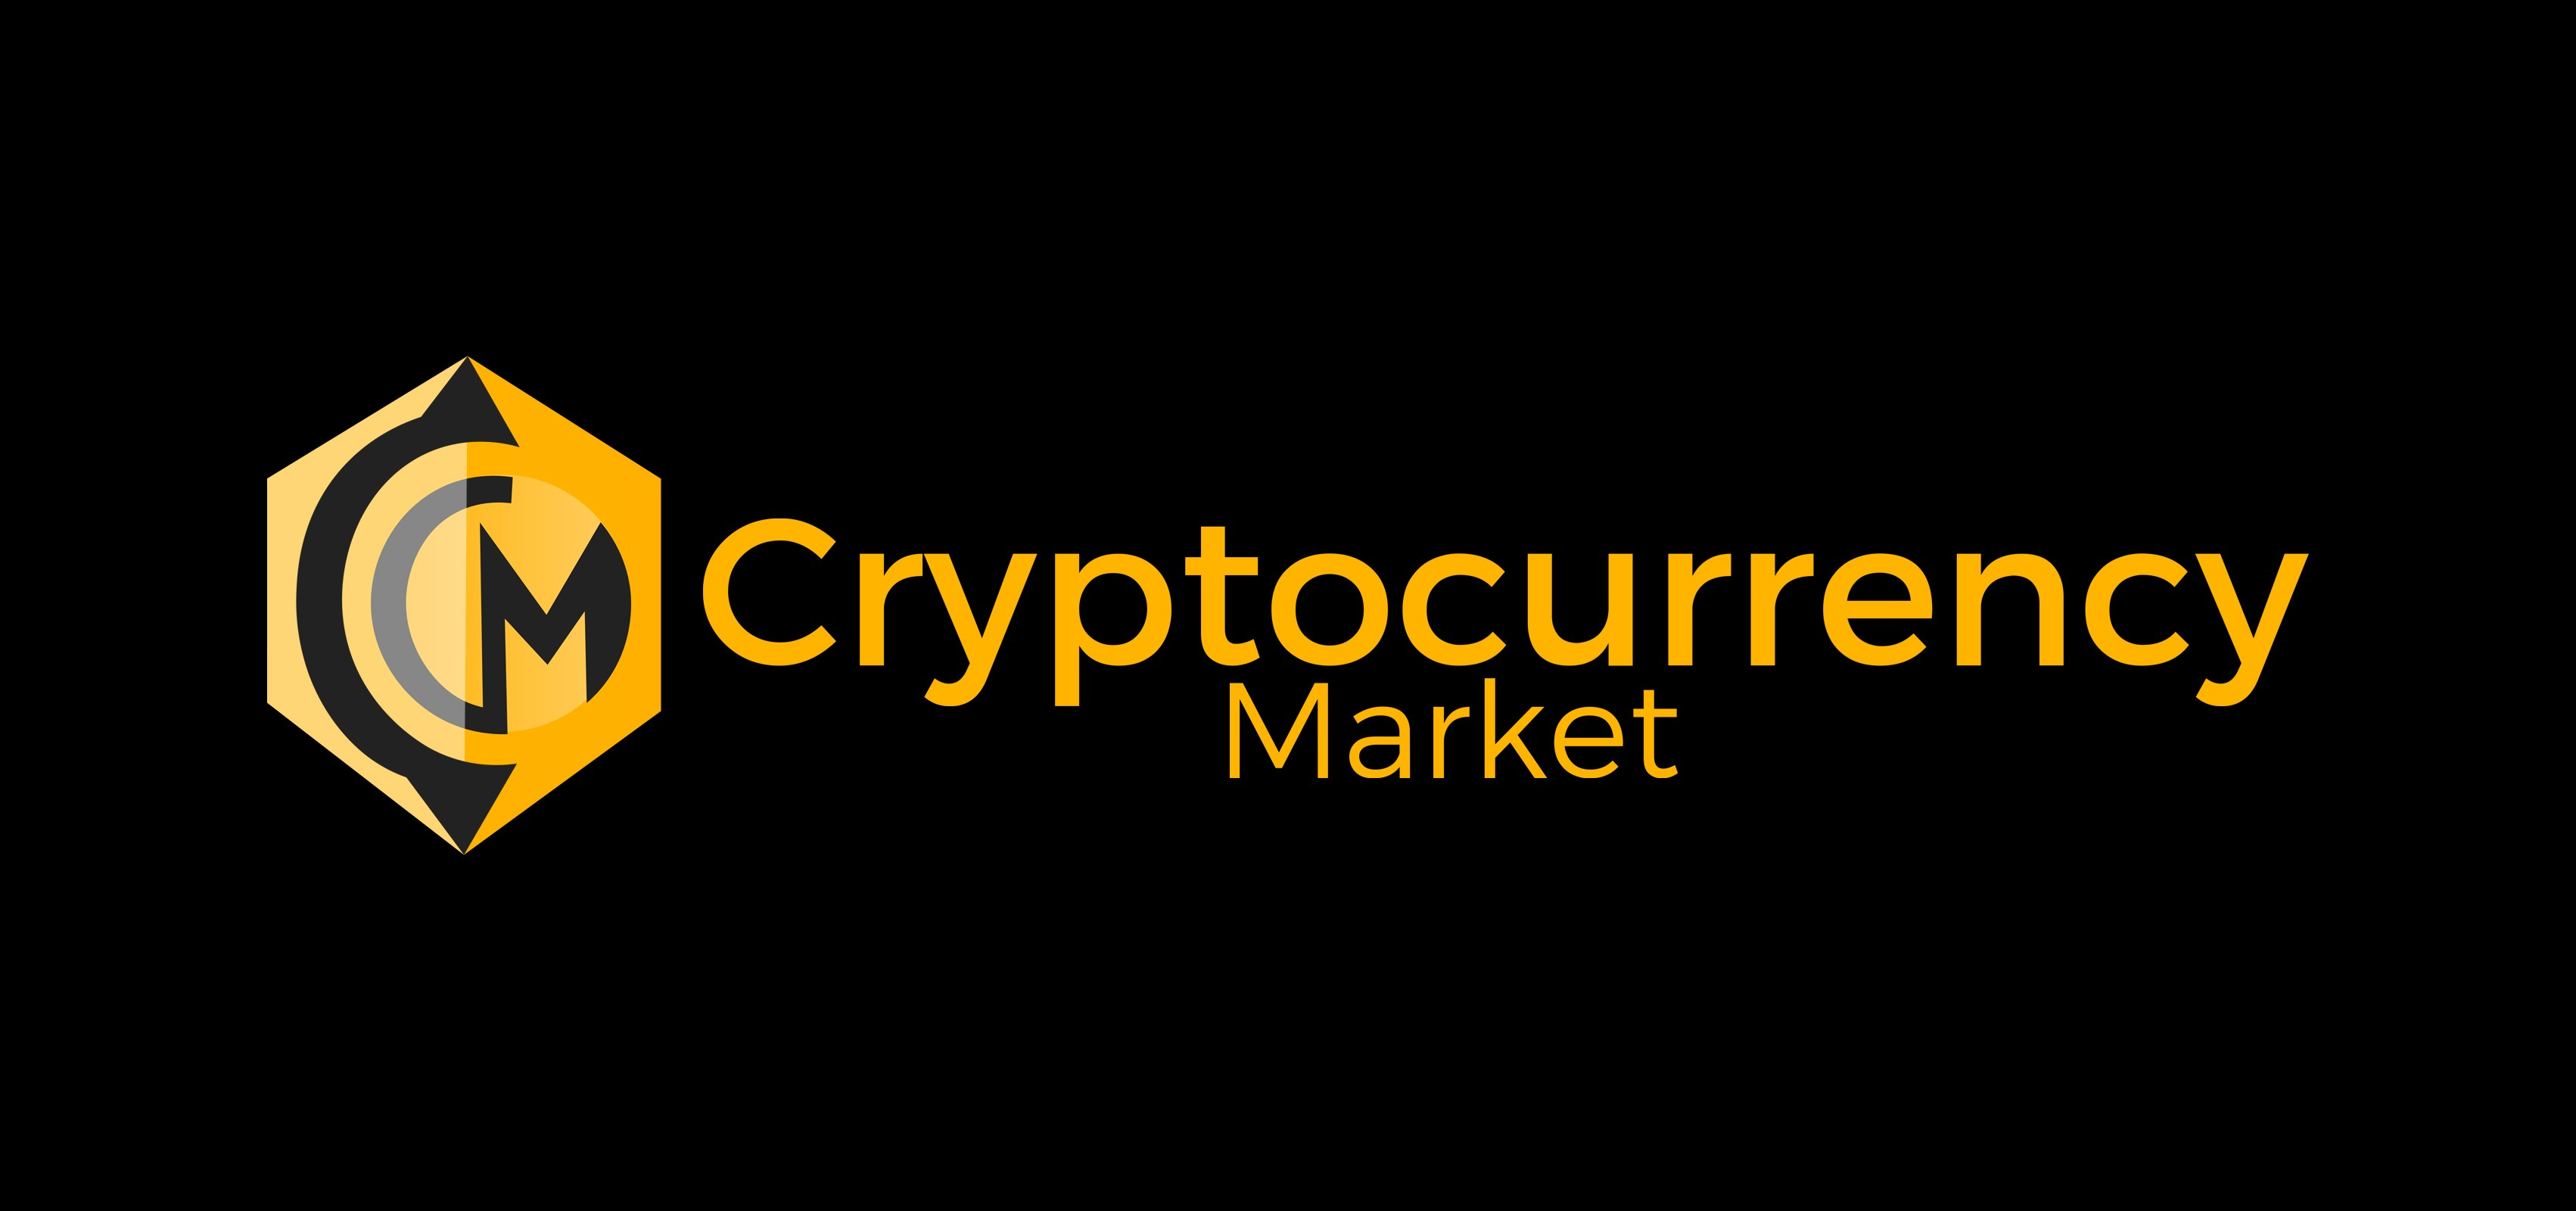 Cryptocurrency as Disruptive Technology: Theoretical Insighs